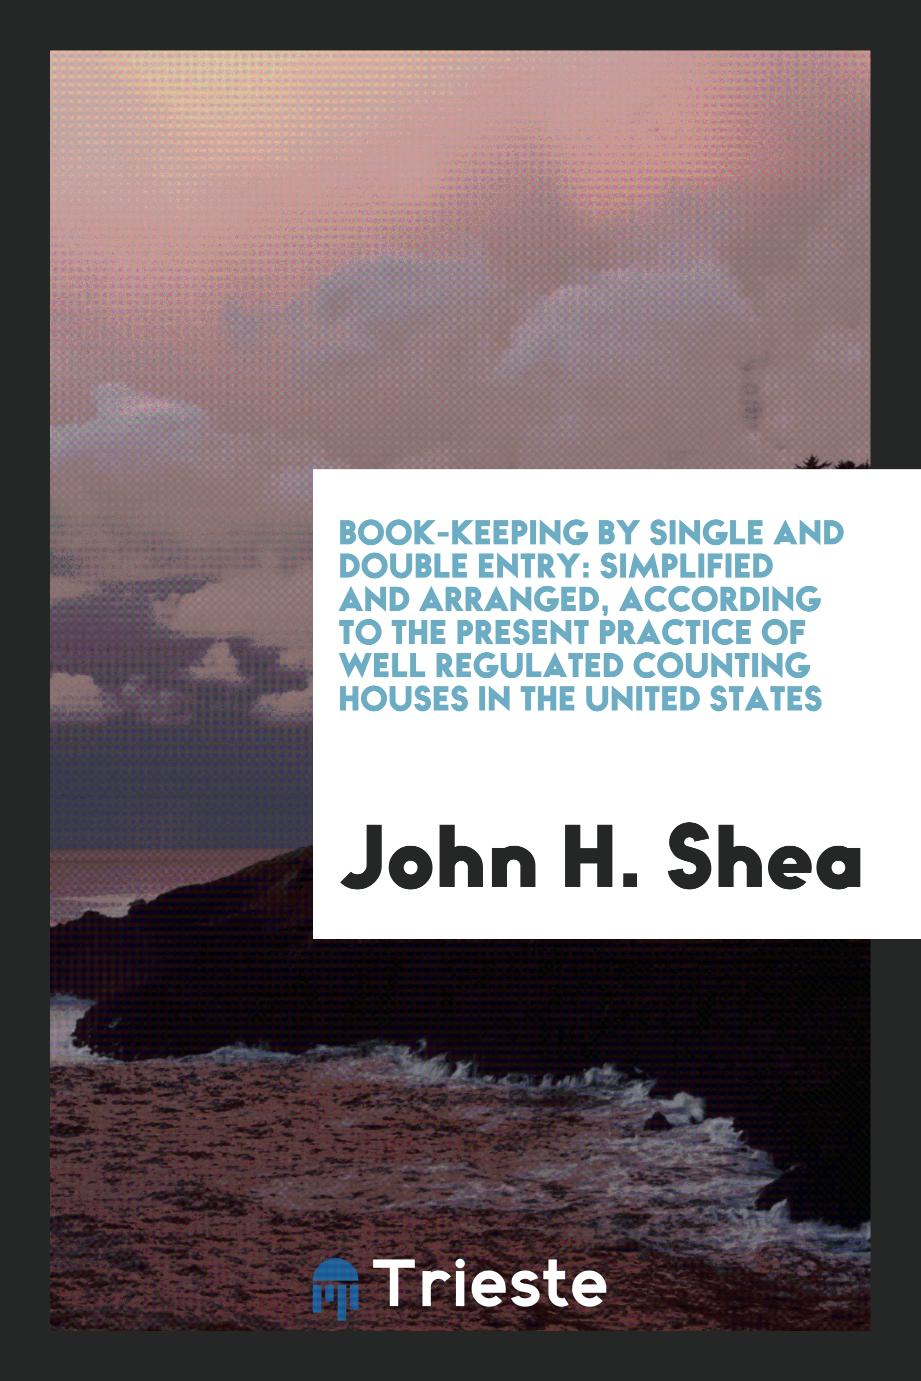 Book-Keeping by Single and Double Entry: Simplified and Arranged, According to the Present Practice of Well Regulated Counting Houses in the United States